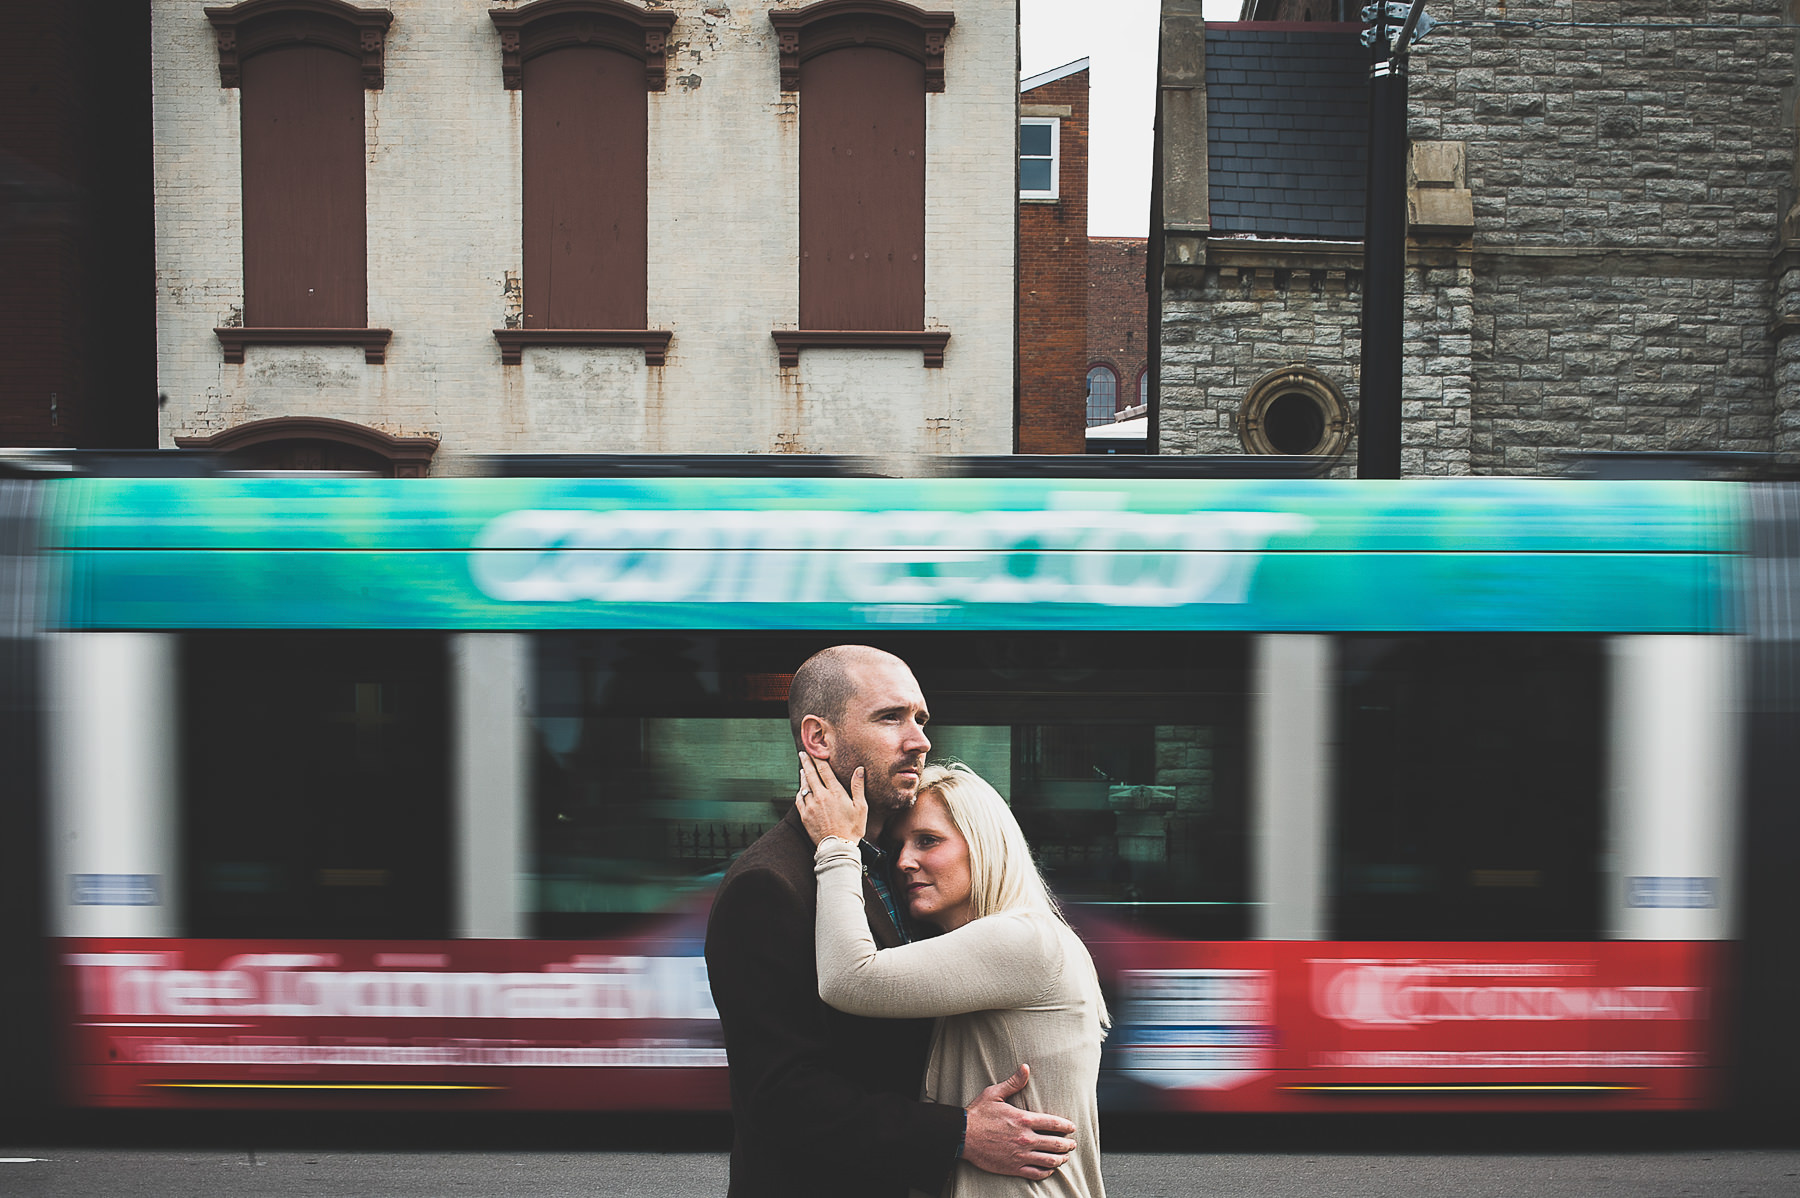 breighton-and-basette-photography-copyrighted-image-blog-emily-and-dave-engagement-027.jpg